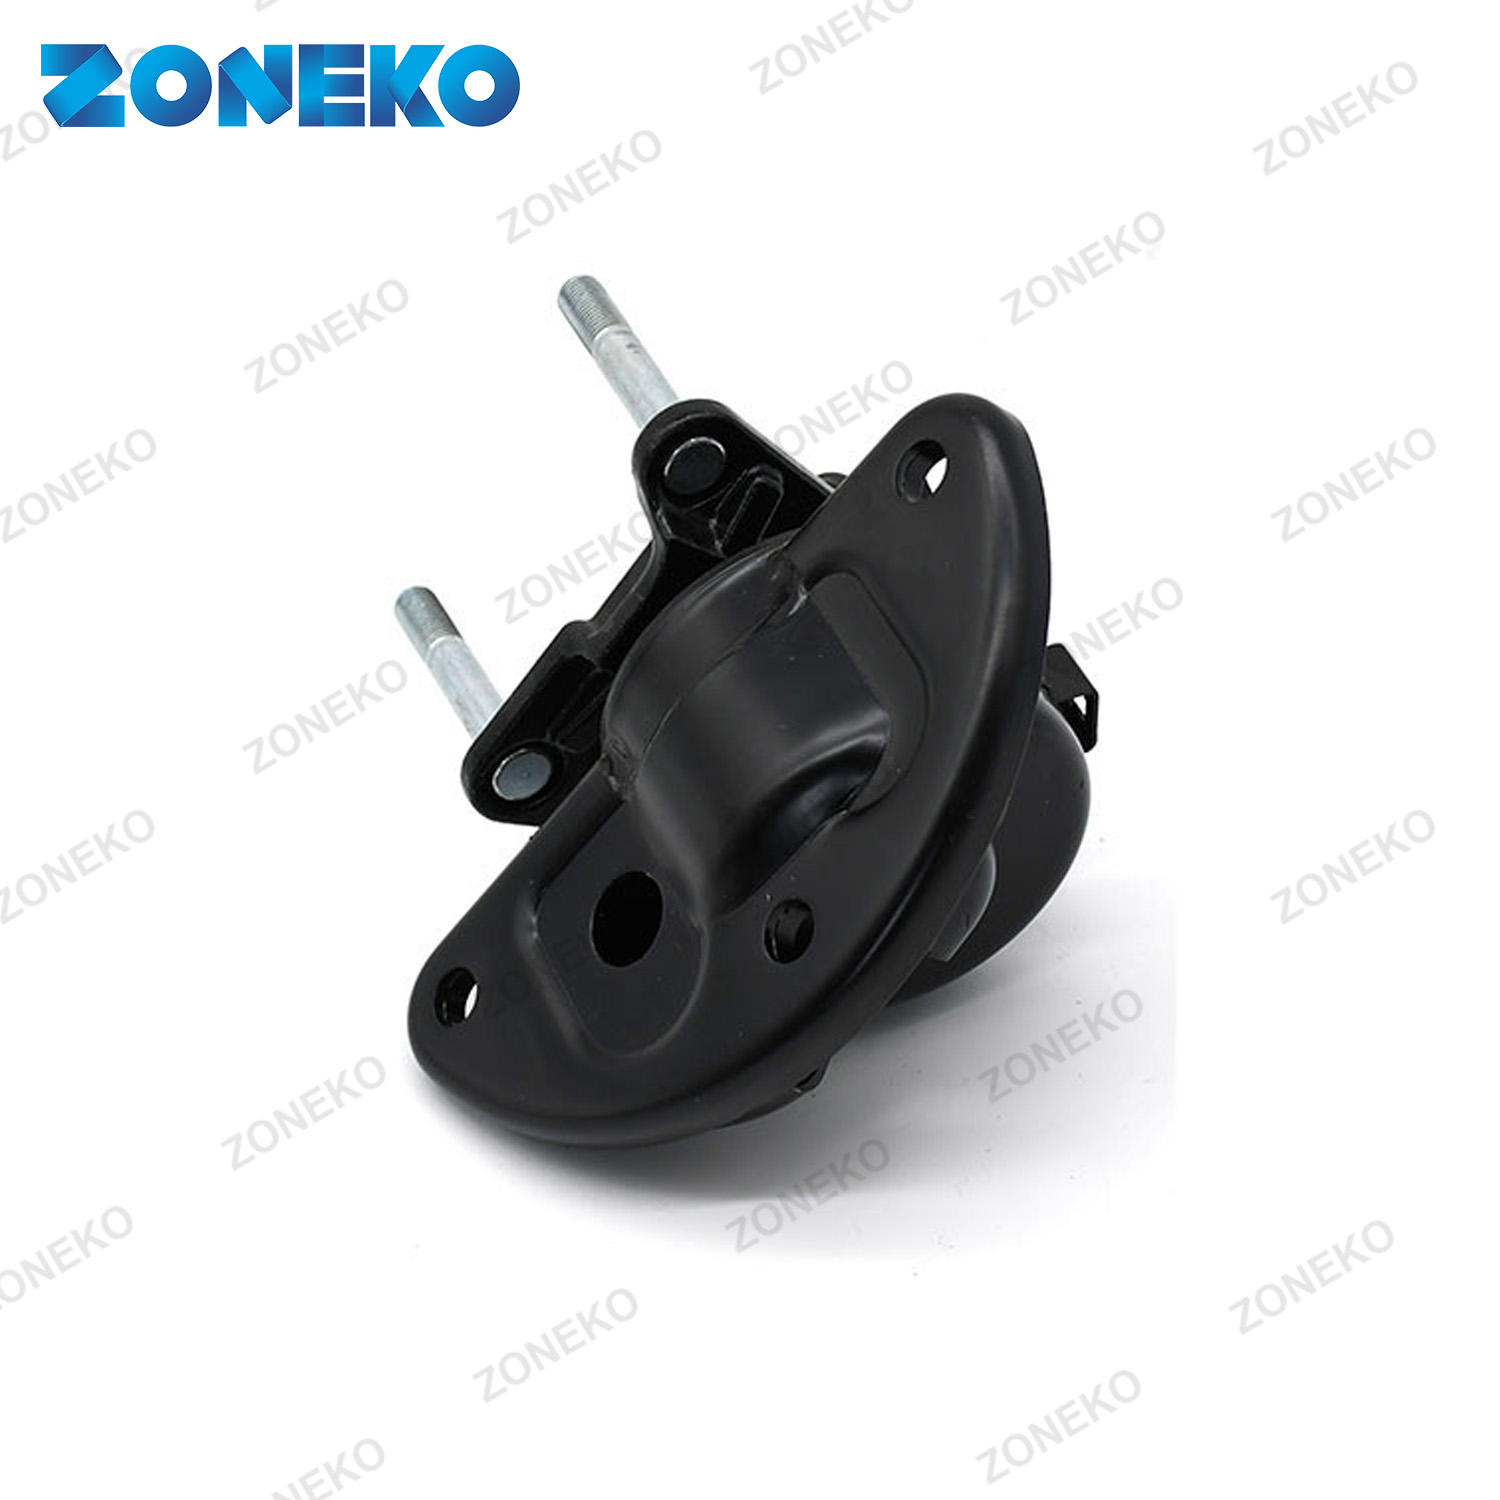 Genuine Hyundai 32820-2D100 Clutch Pedal